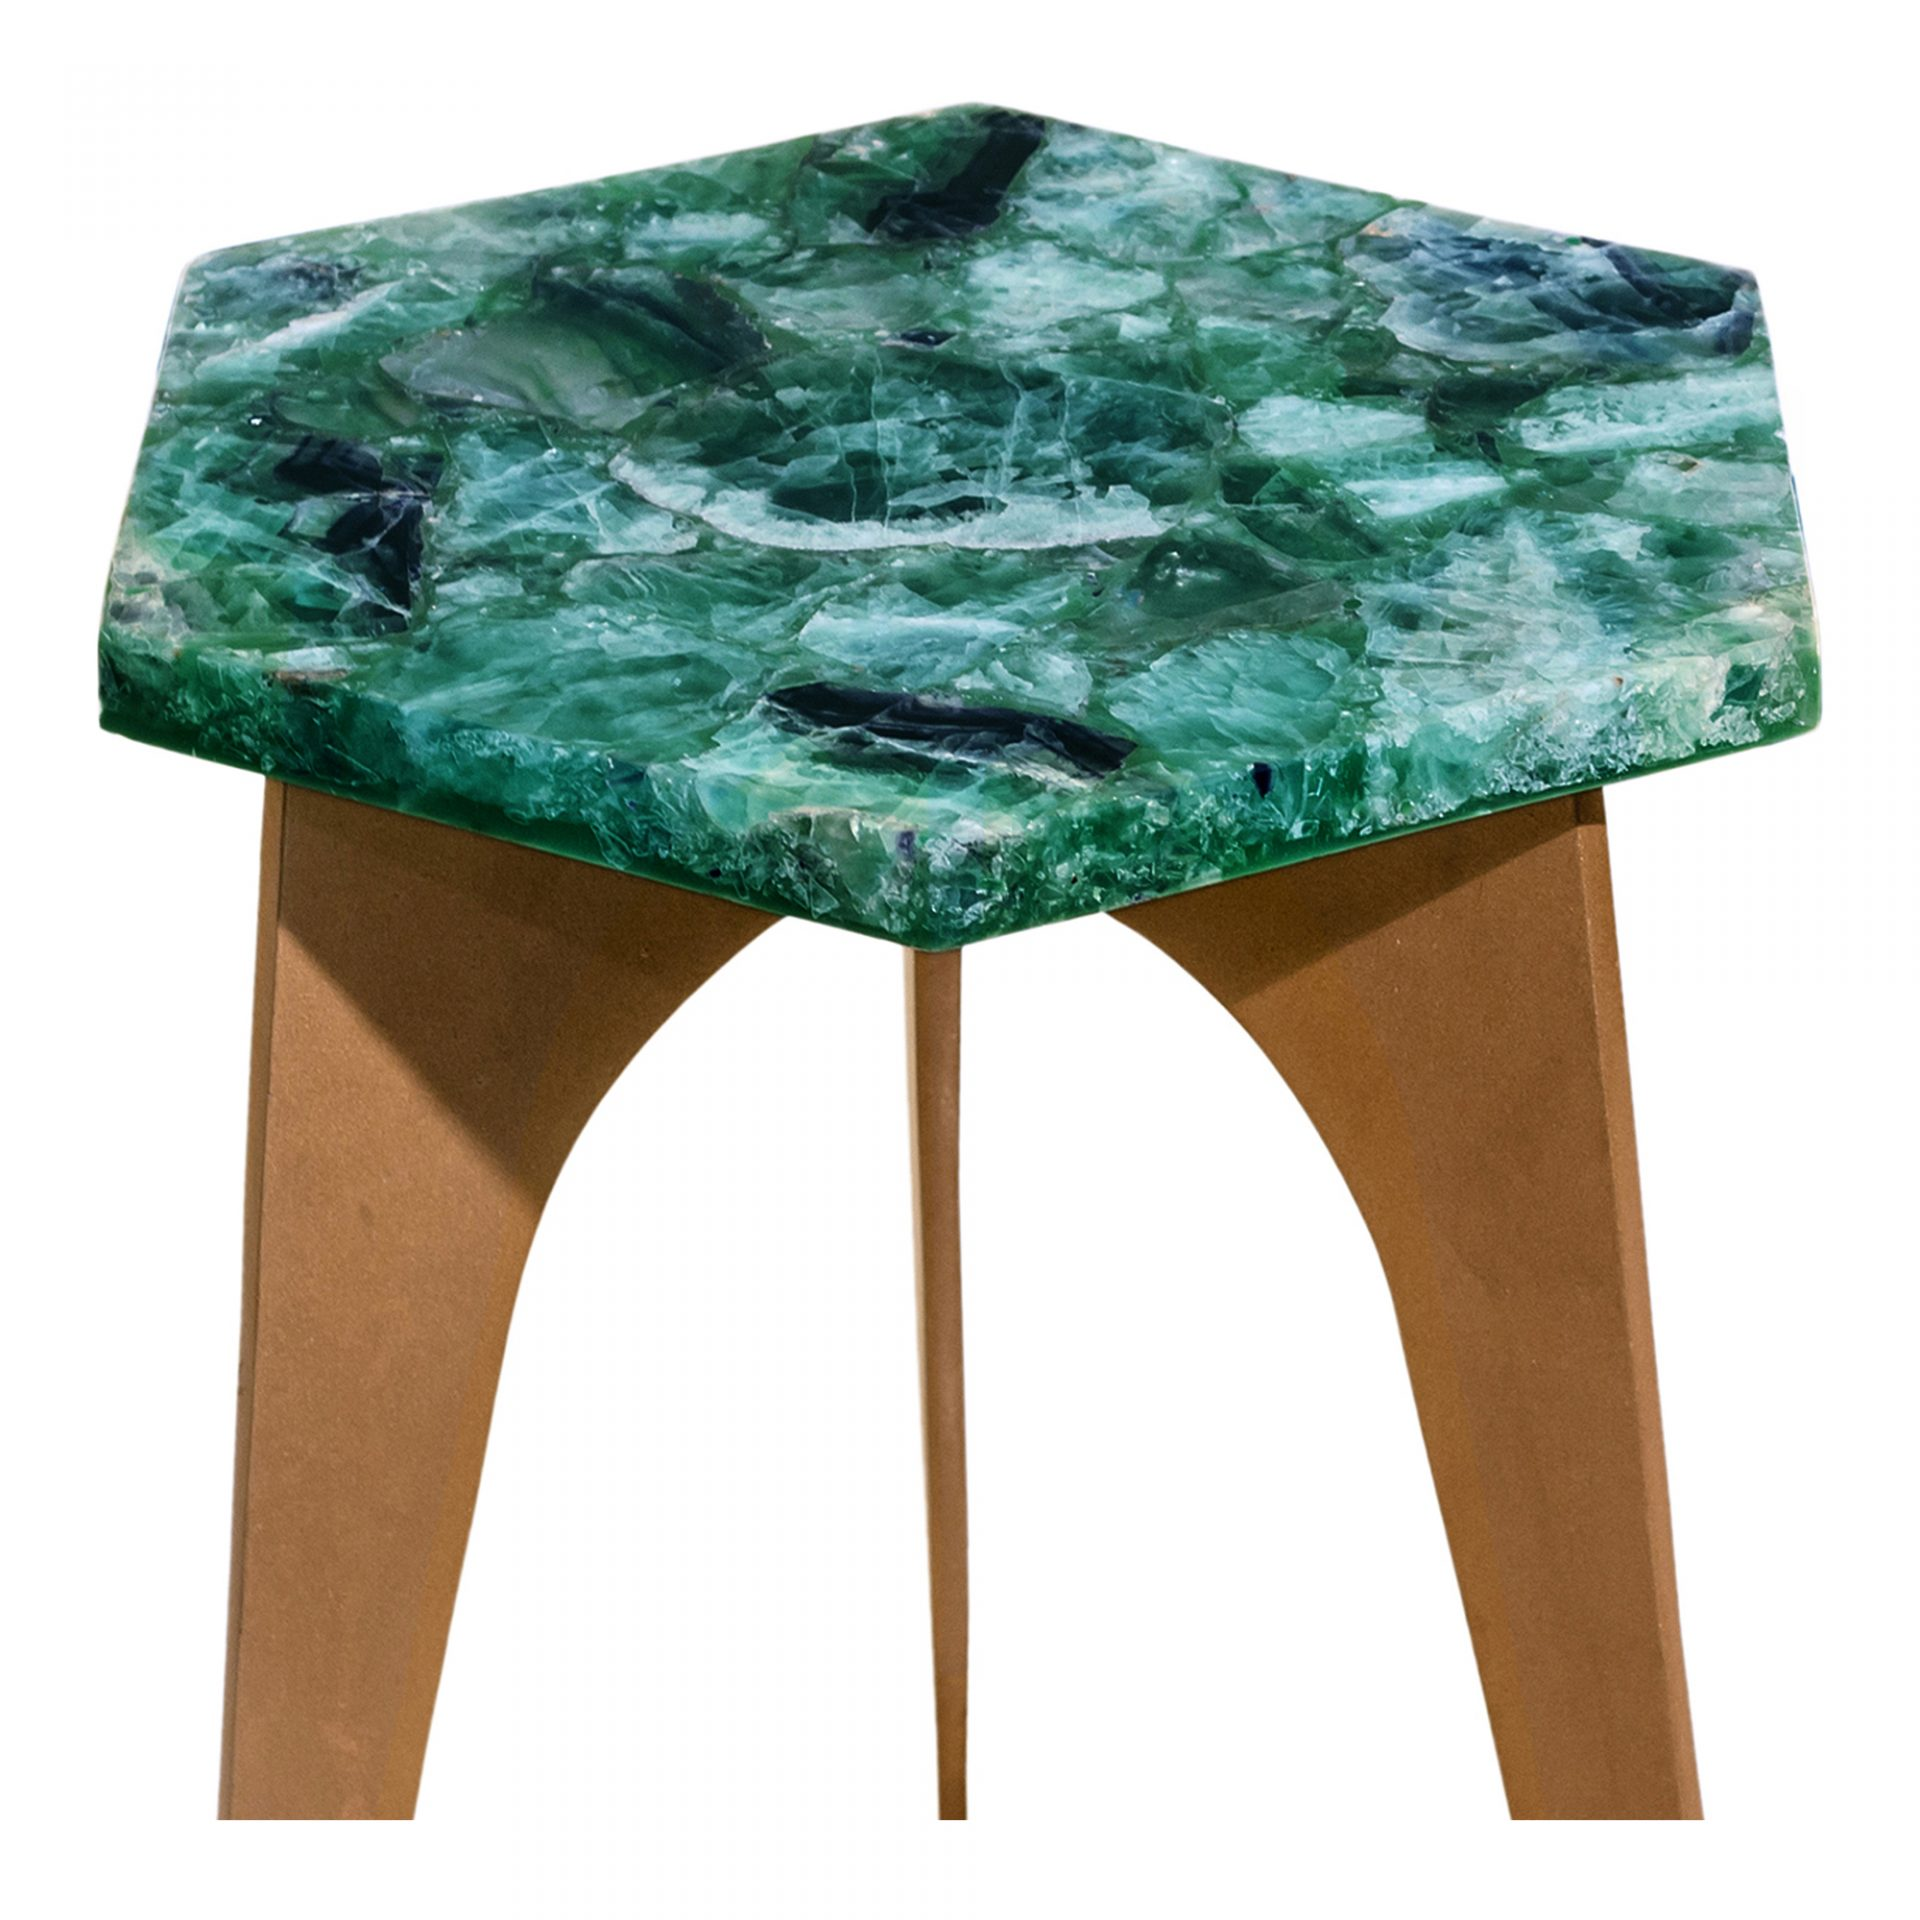 green fluorite accent table products moe whole tables quilted runners dining mats unfinished chairs battery powered standing lamp round metal side target wooden chair legs mango